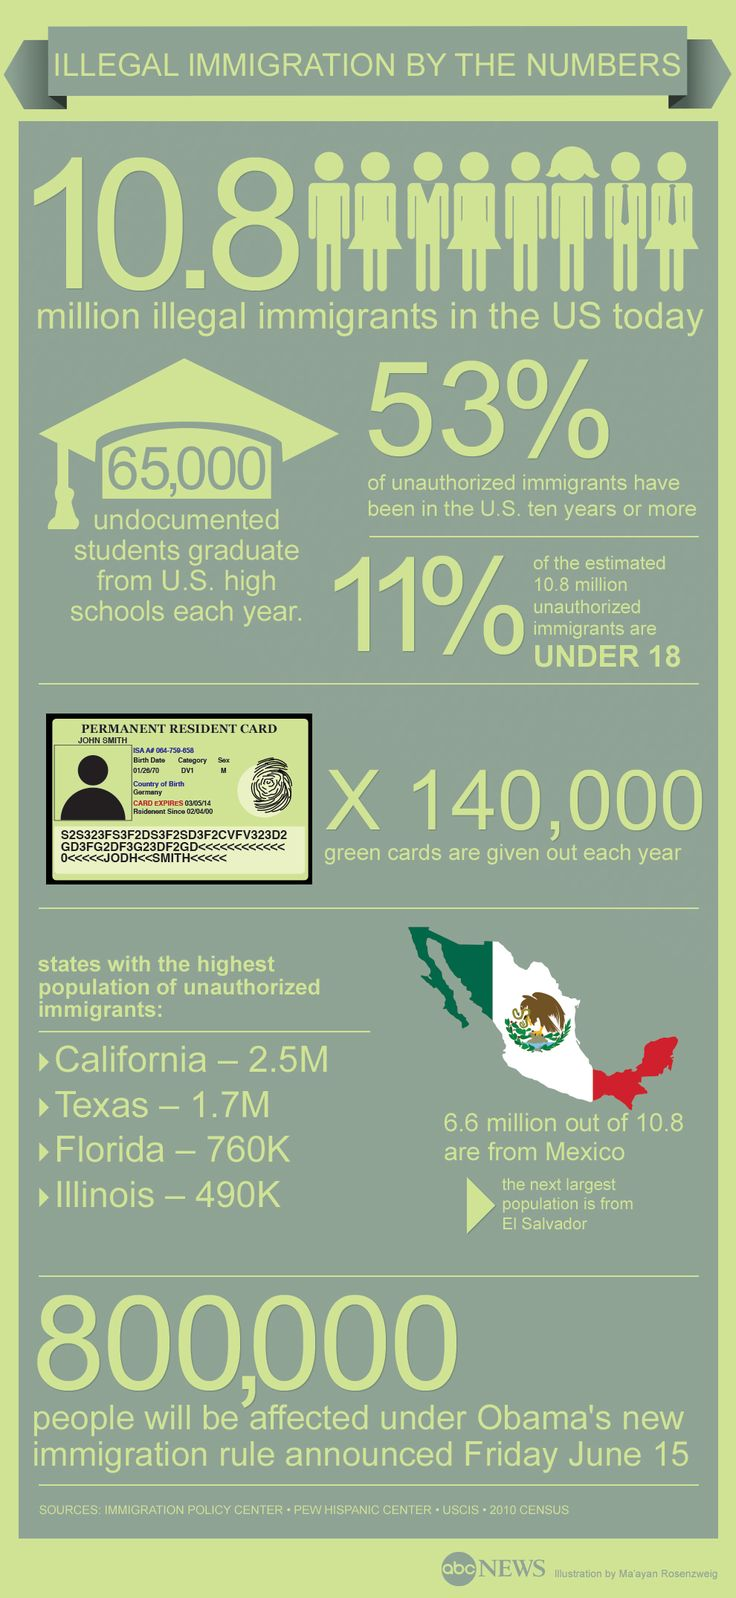 An Overview of Legal and Illegal Immigration